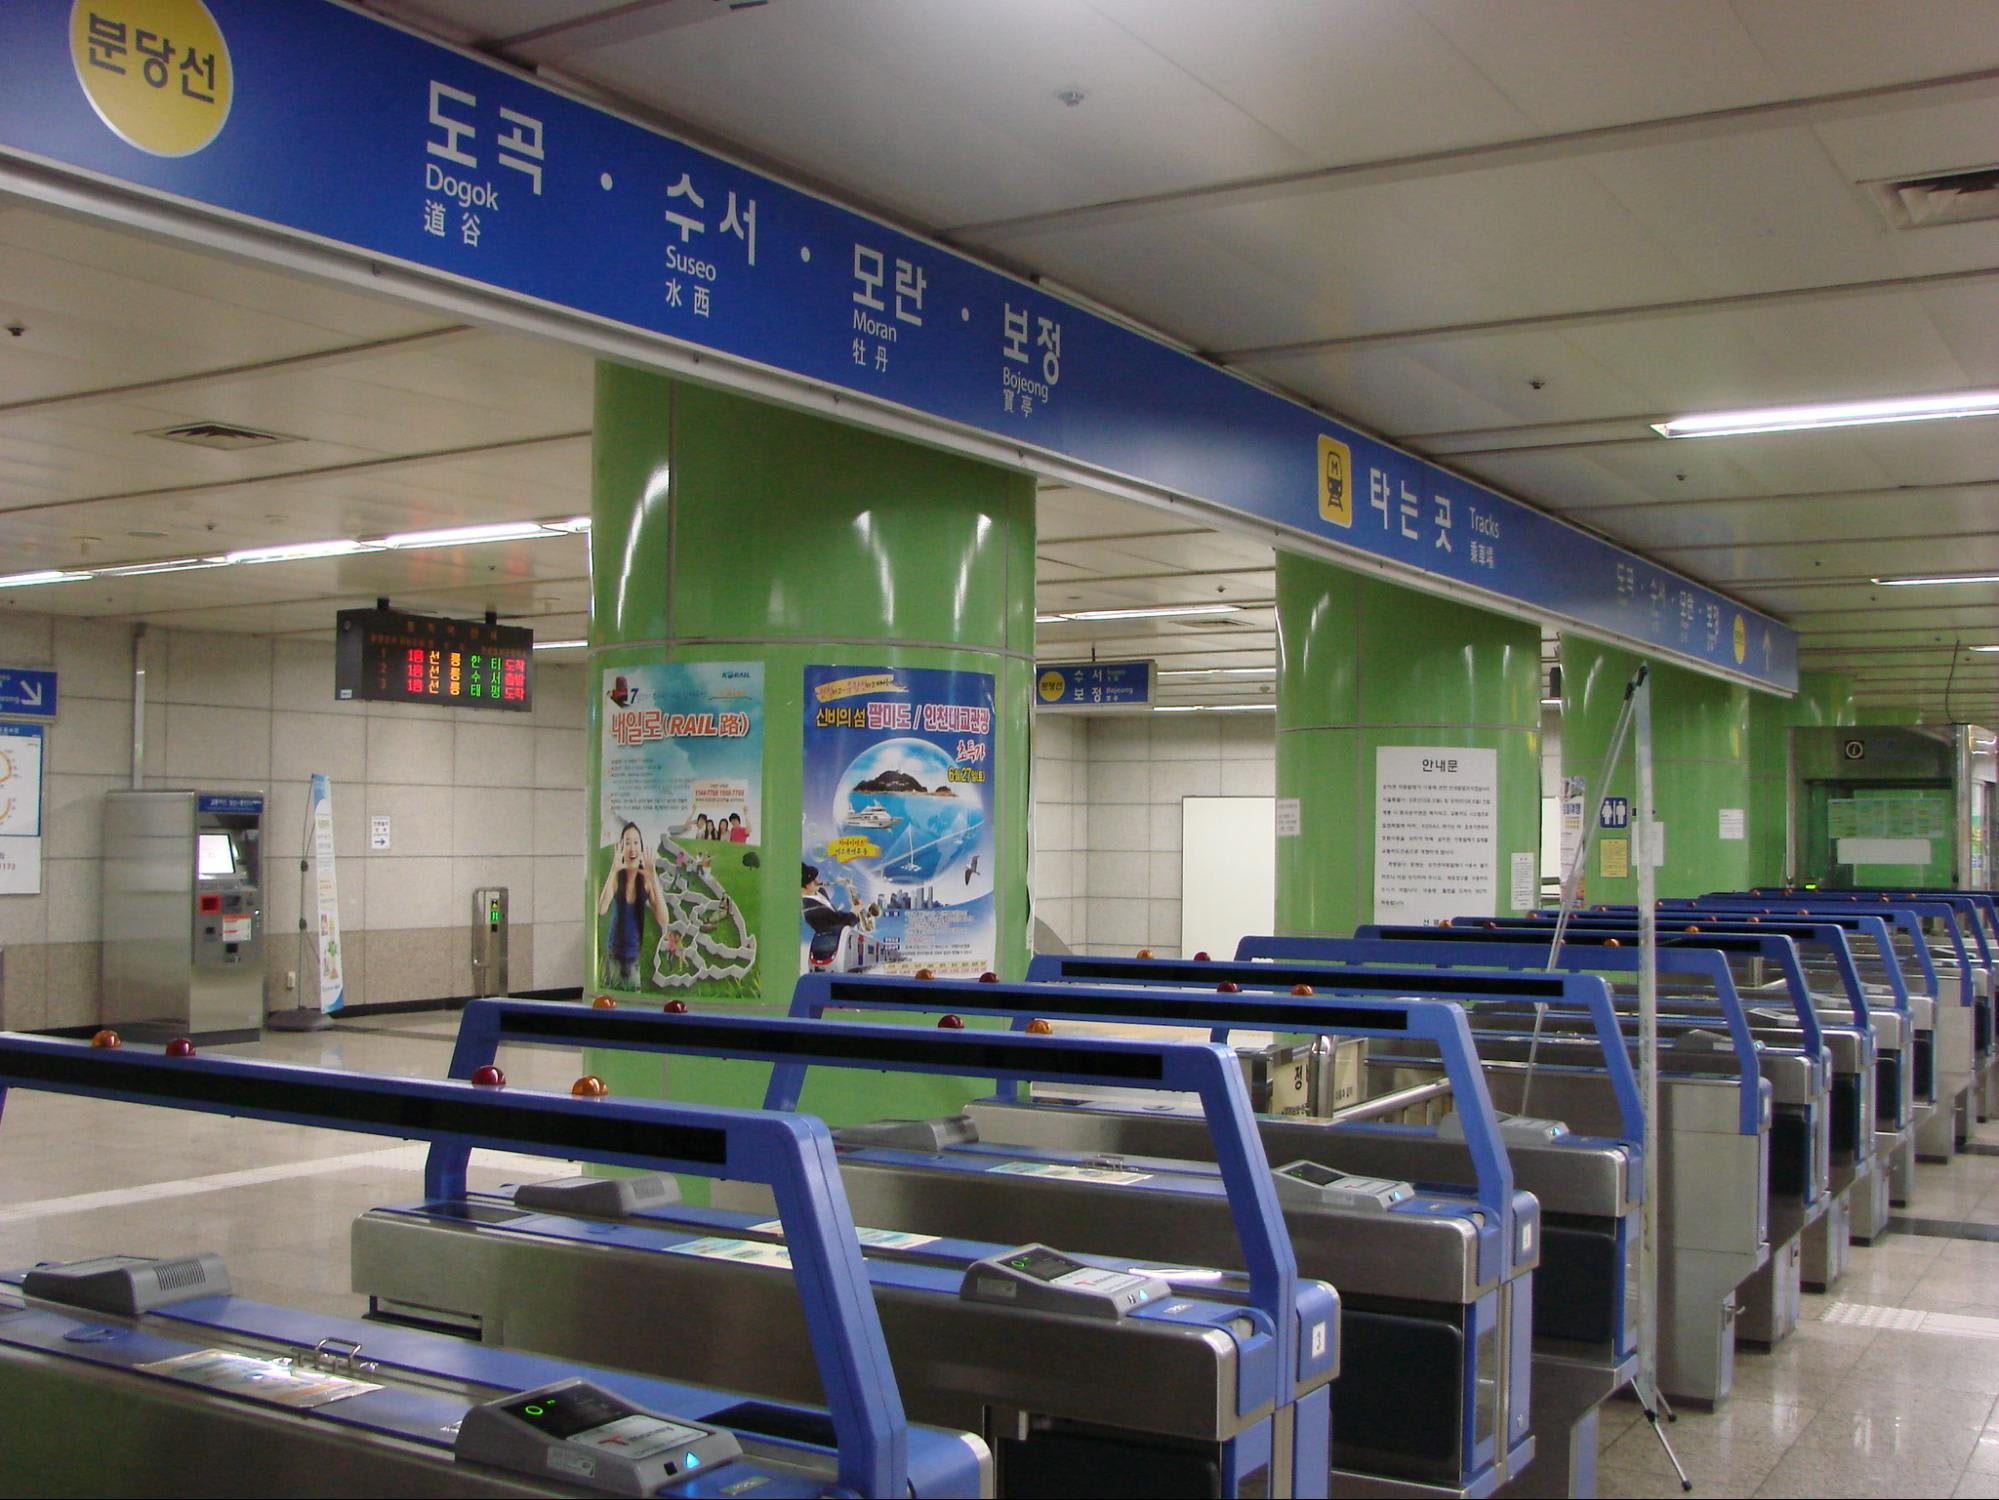 seoul subway guide